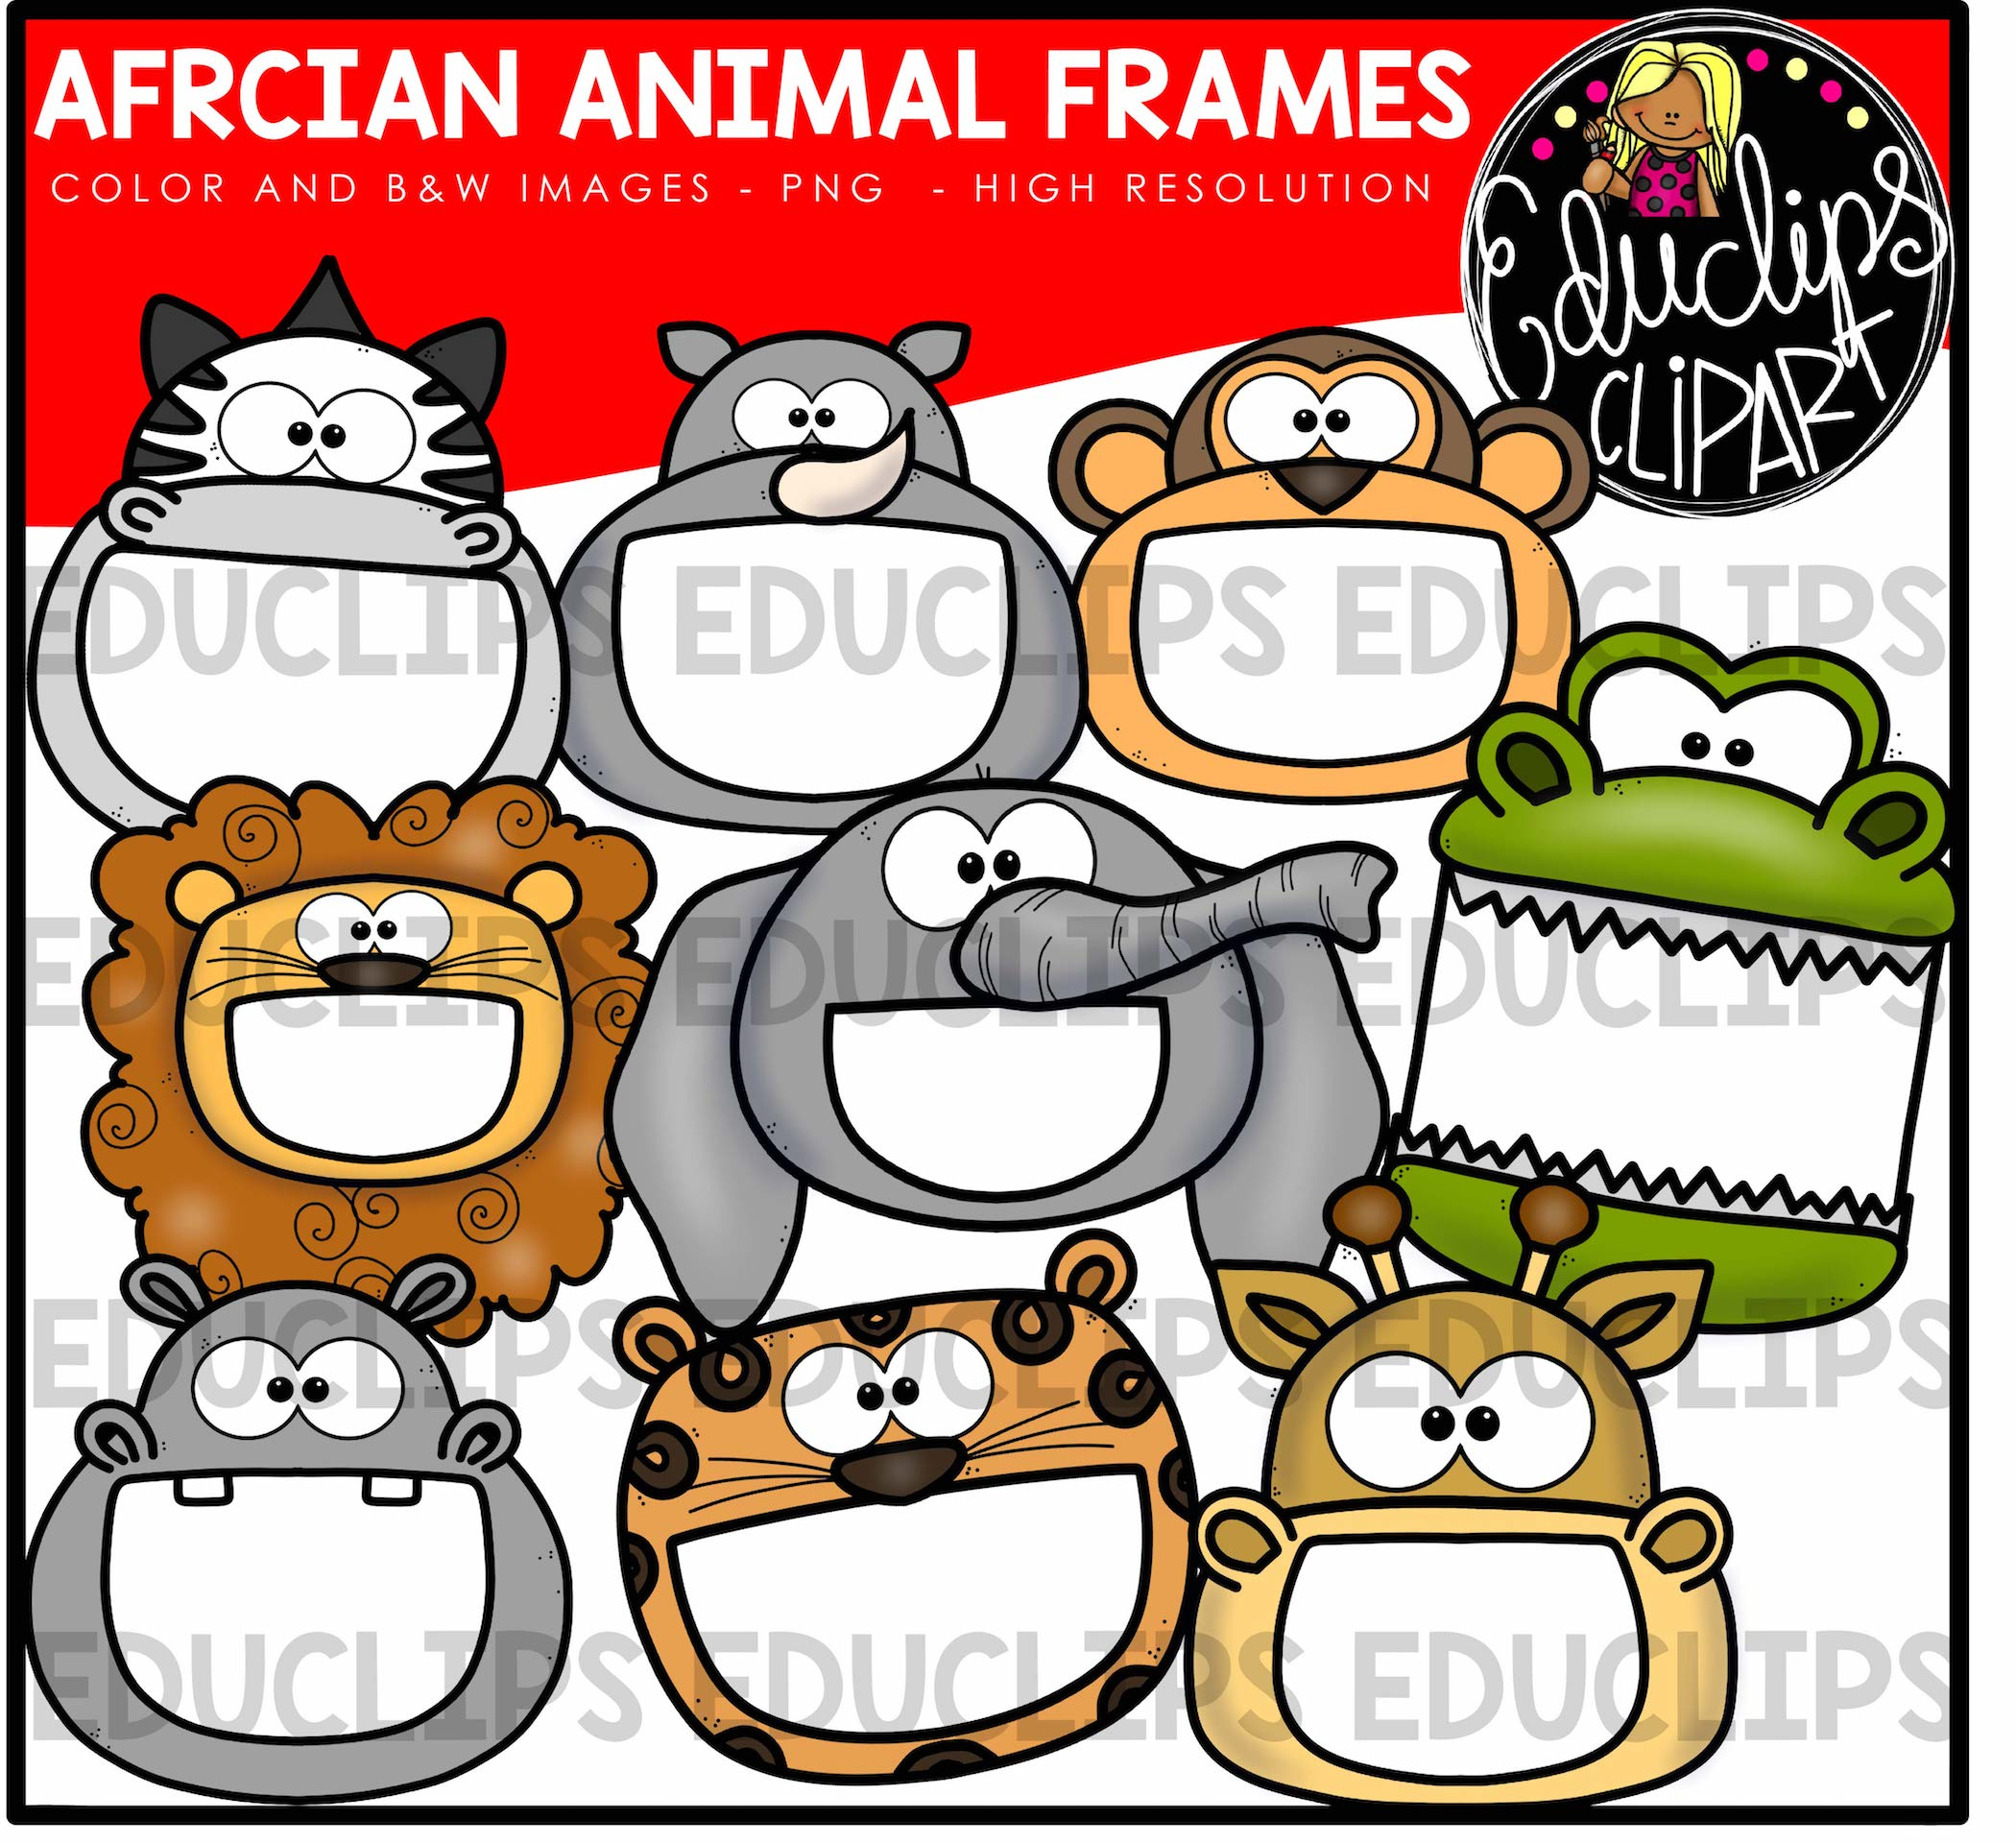 African Animal Frames Clip Art Bundle (Color and B&W) - Welcome to ...